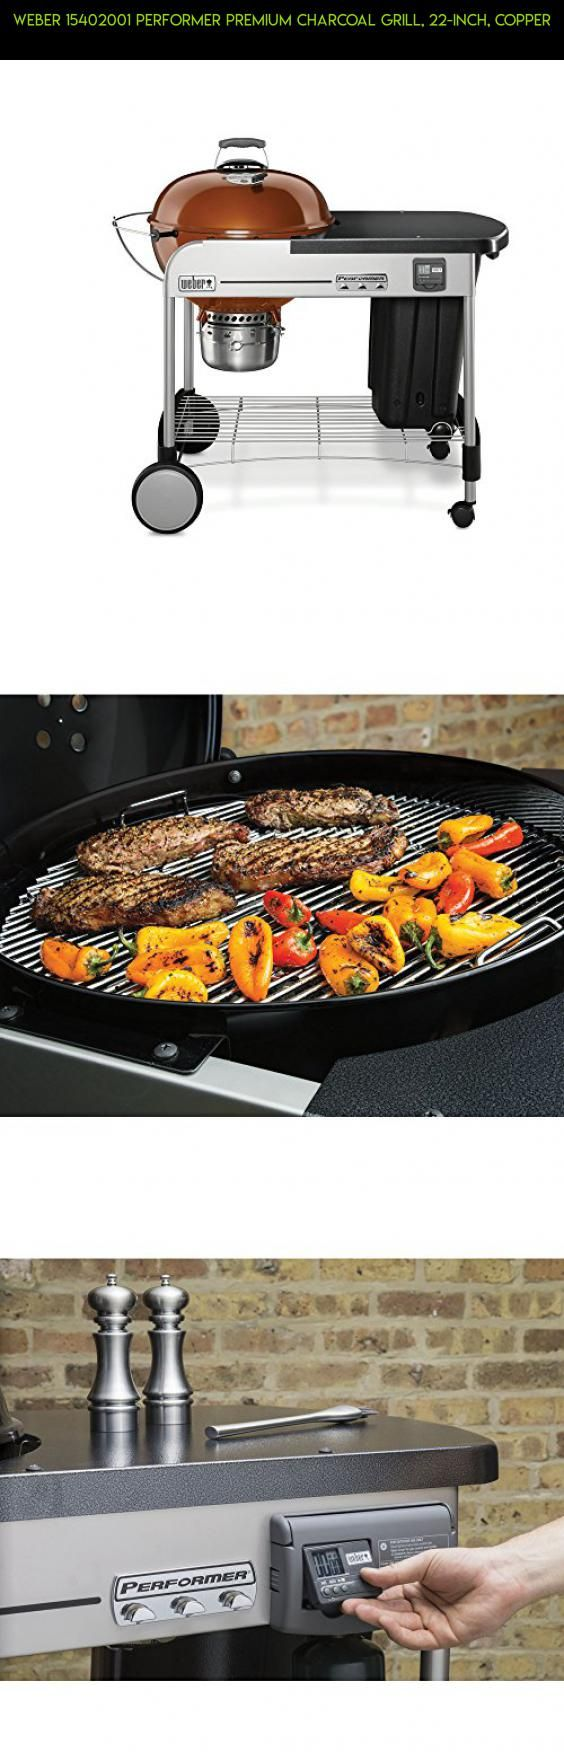 Weber 15402001 Performer Premium Charcoal Grill, 22-Inch, Copper #camera #parts #weber #fpv #racing #drone #kit #gadgets #charcoal #products #shopping #grills #technology #tech #plans